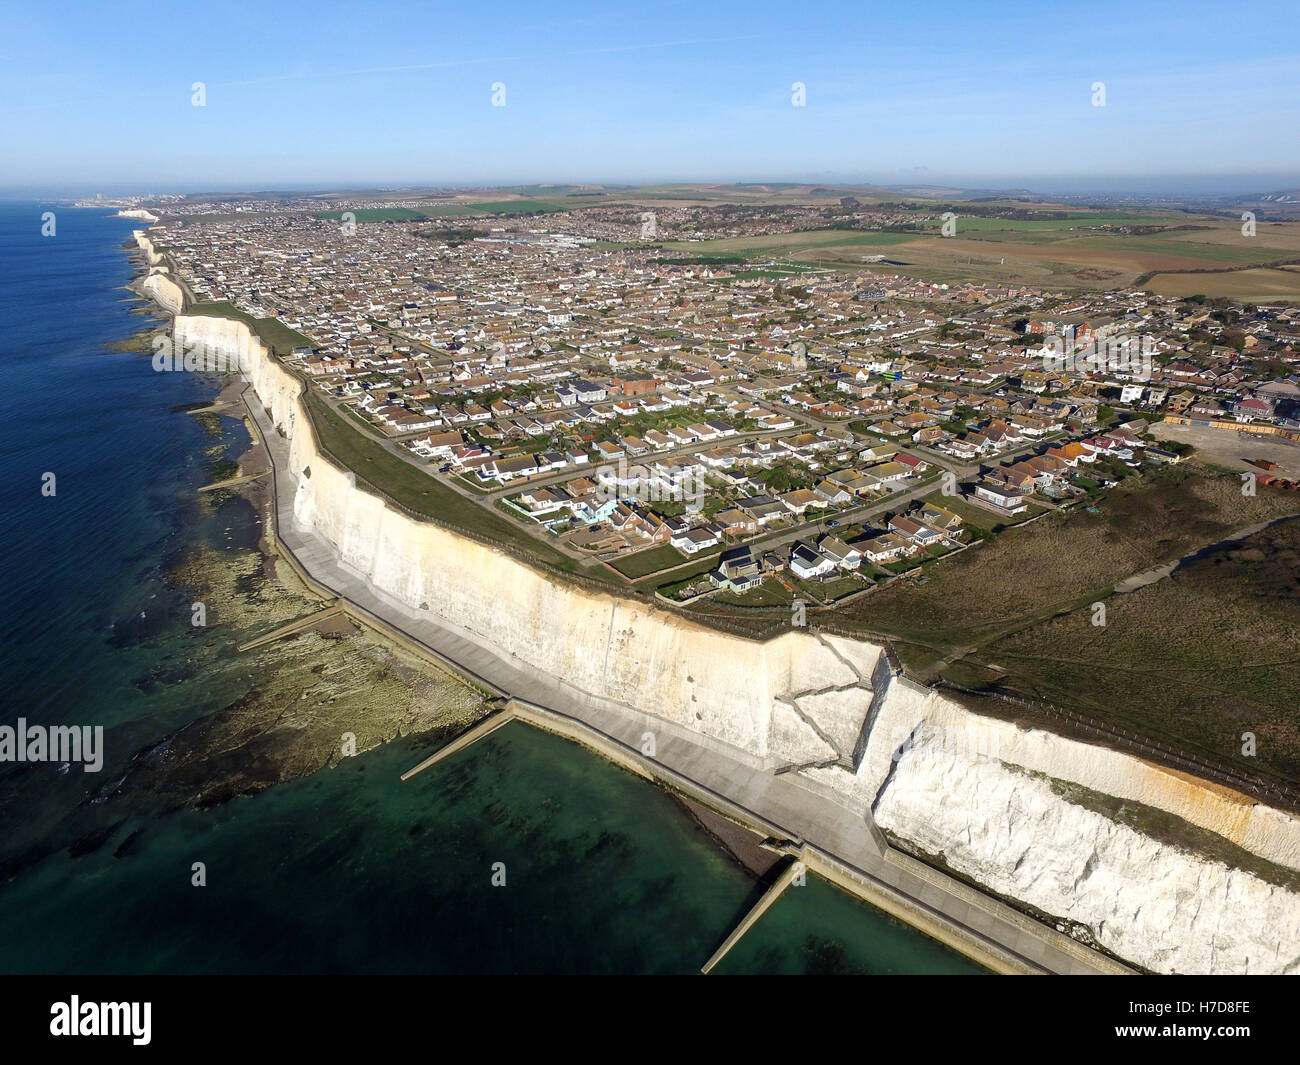 Aerial view of Peacehaven, East Sussex, a small seaside town perched on top of chalk cliffs near the South Downs - Stock Image